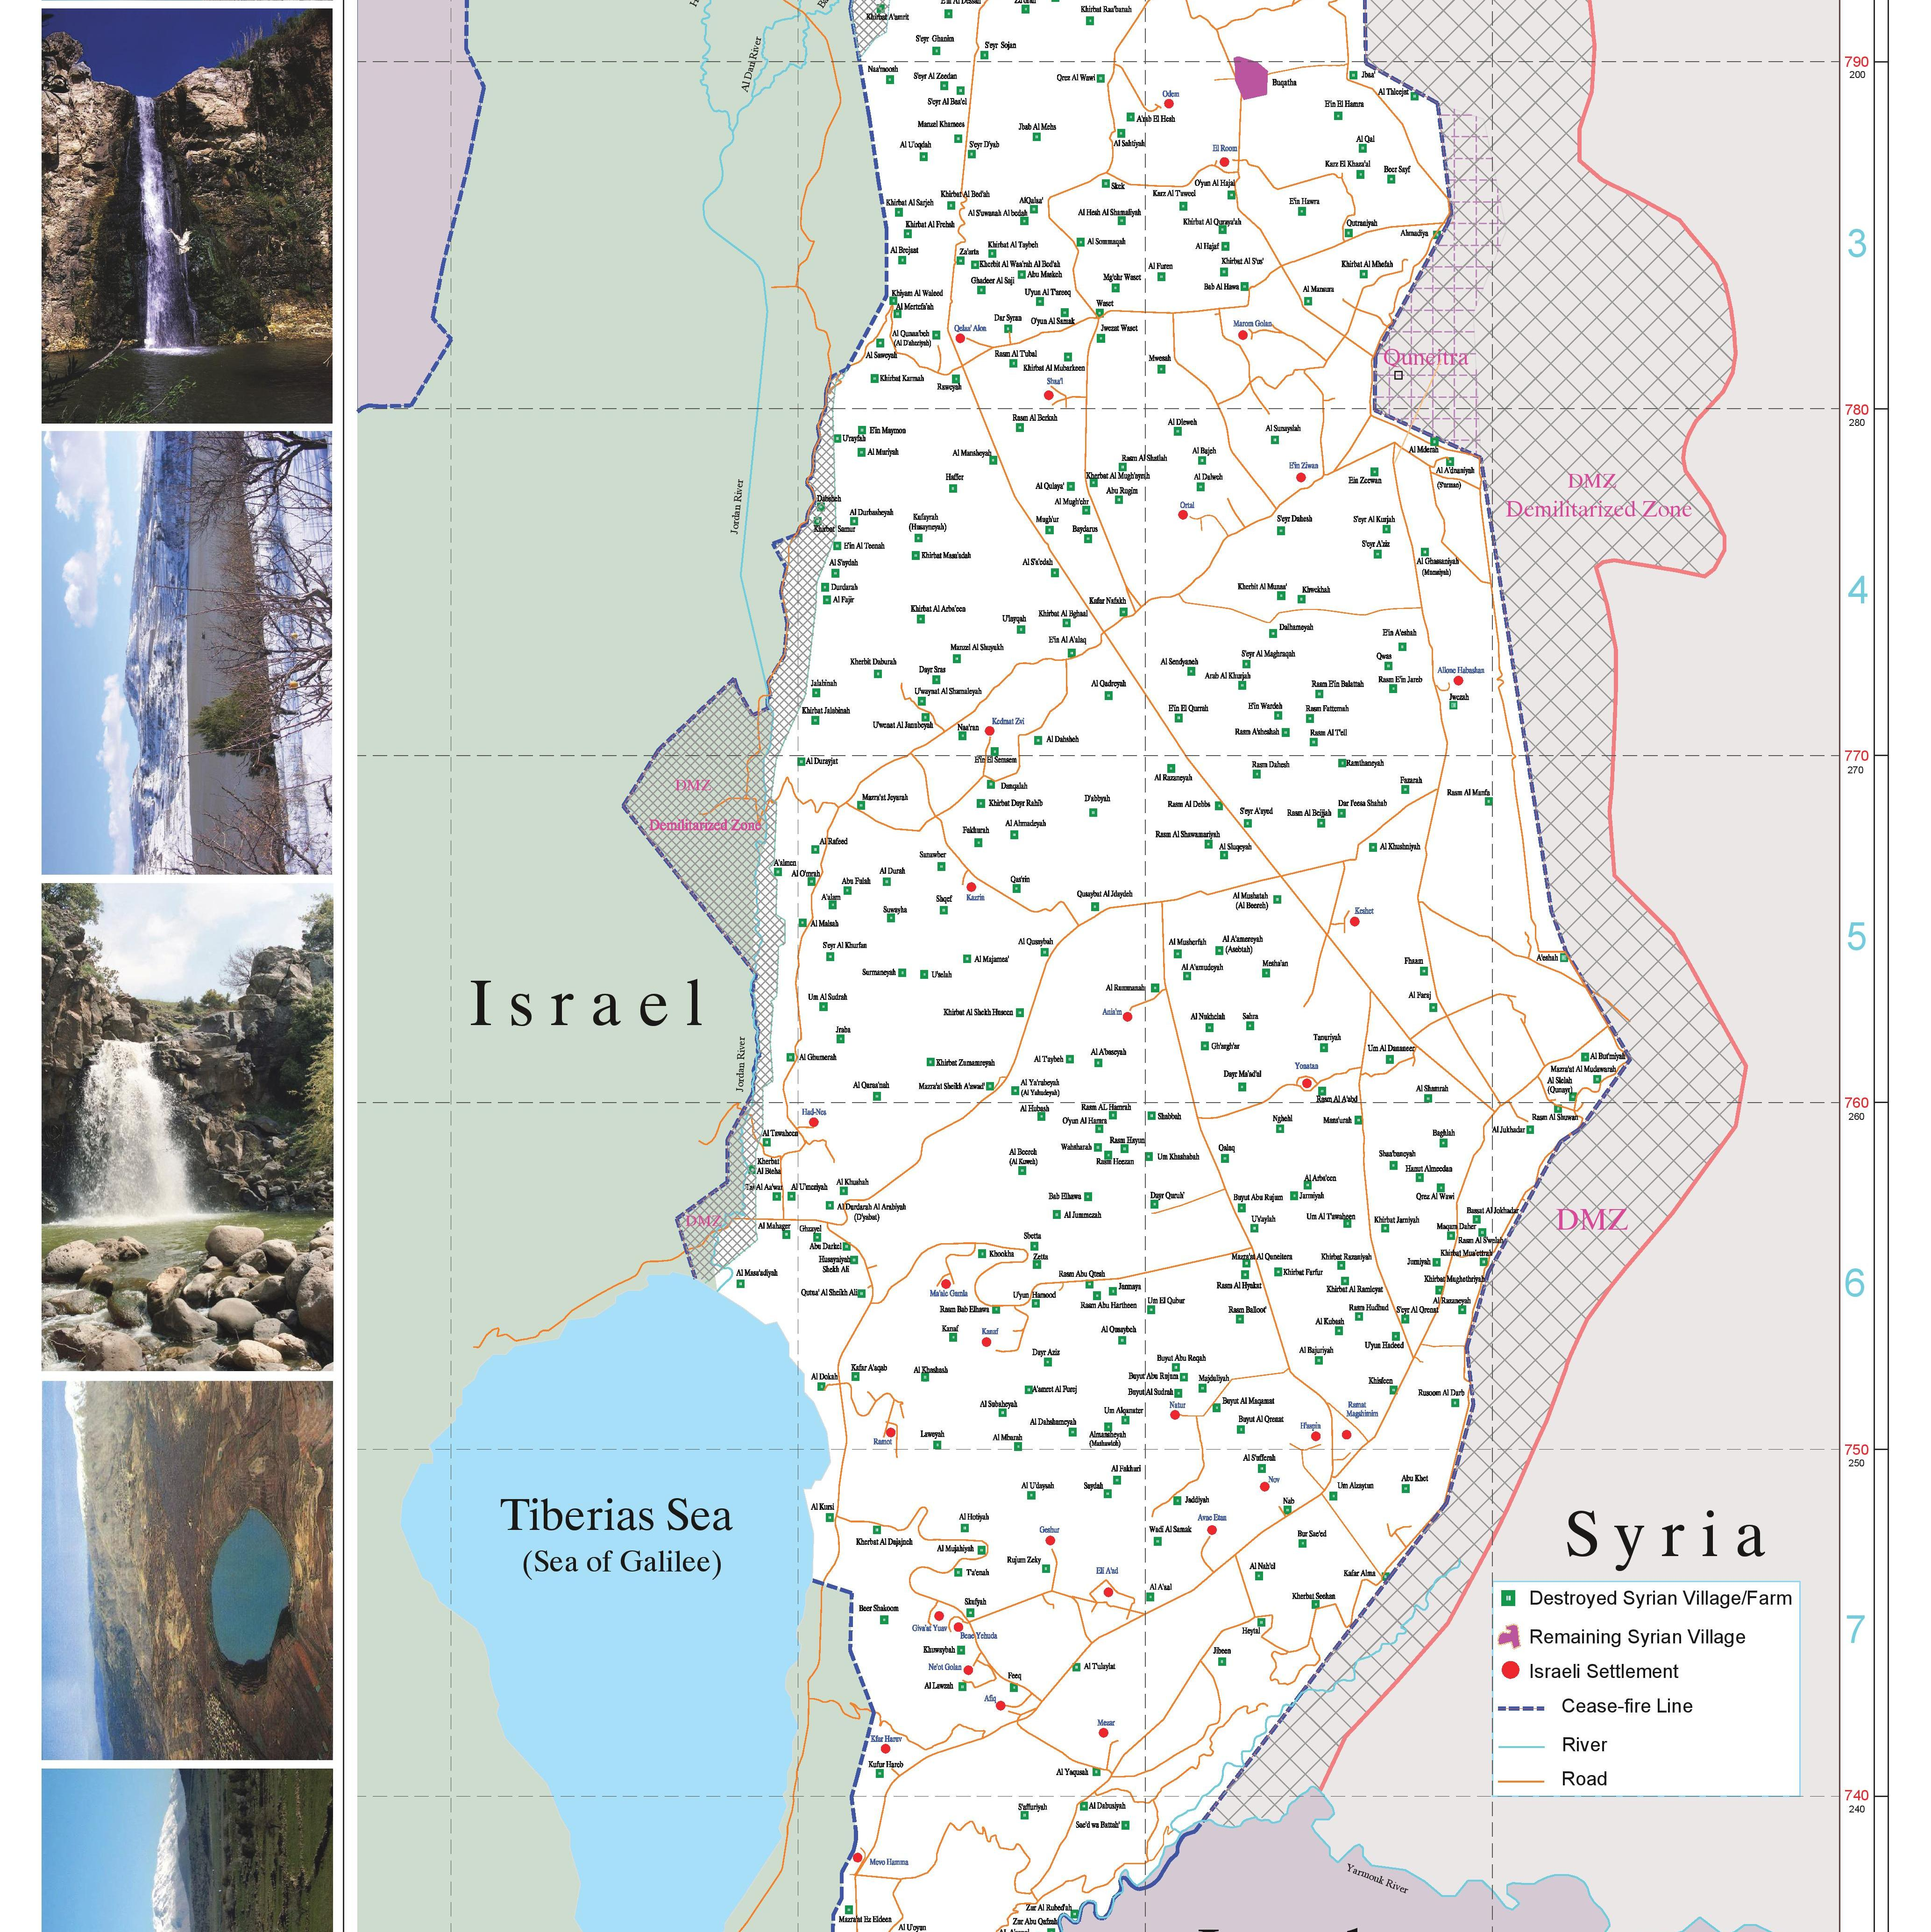 Publication of a new map of Syrian villages and farms ... on aleppo map, sinai peninsula map, purple line, sinai peninsula, yom kippur war, gaza strip, syria map, haifa map, mount hermon map, gaza map, red sea map, jordan map, six-day war, arabian sea map, zagros mountains map, israel map, negev desert map, dead sea map, east jerusalem, sea of galilee, palestinian territories, tel aviv, strait of hormuz map, dead sea, west bank, jordan river, suez canal map, yitzhak rabin, kurdistan map, jerusalem map, mesopotamia map, west bank map, tel aviv map, mount hermon,